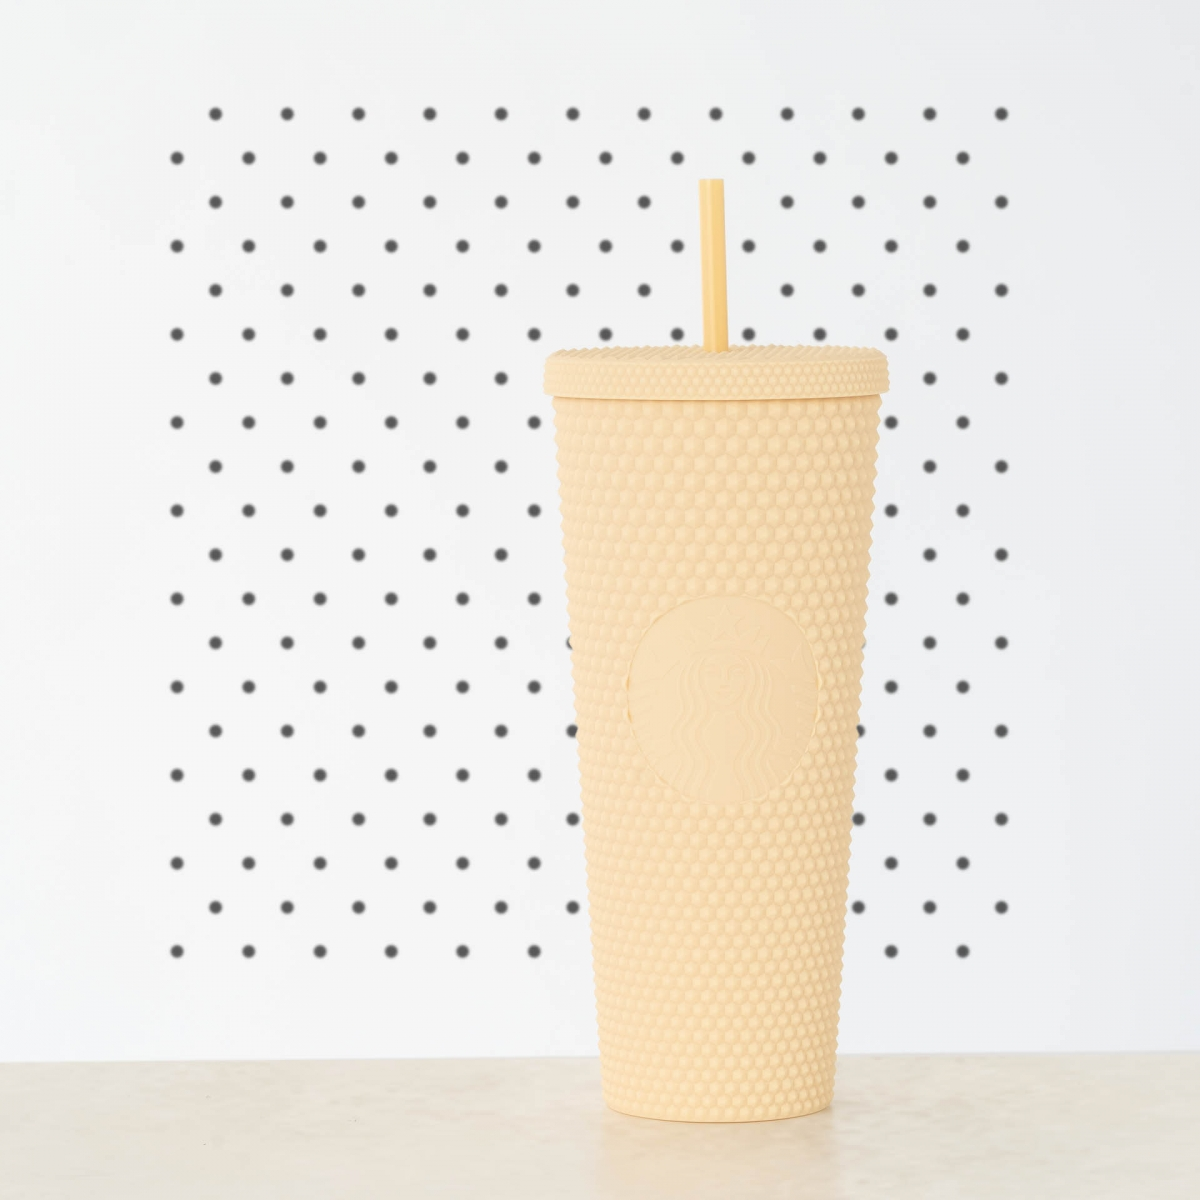 starbucks singapore joy of connection pastel yellow studded cold cup